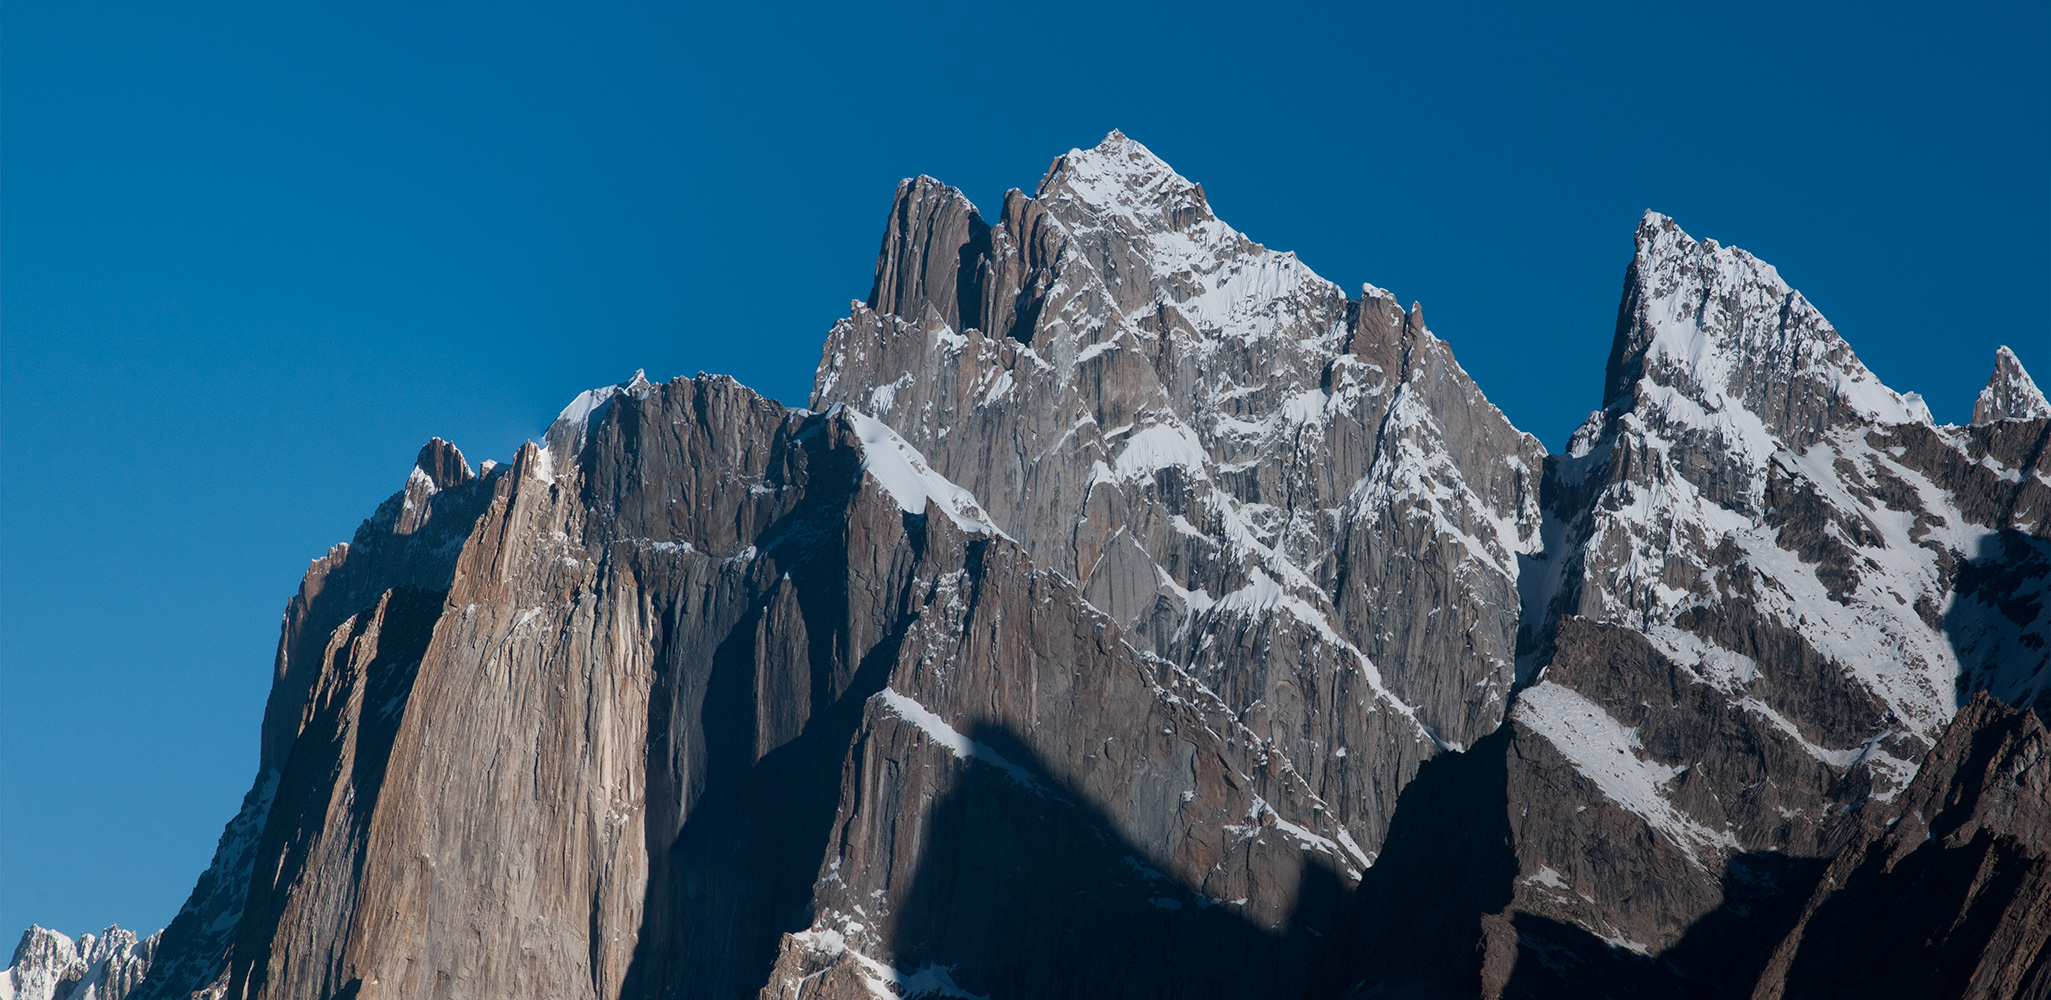 A stitch of two telephotos taken from Goro. Centre and left in the foreground are the upper ramparts of Cahedral (5607m), and on the right is the first Lobsang Spire (5428m). Towering above are the summits of Great Trango (6286m) and Trango Tower (6289m) and finally in the centre, towering above them all is Kruksum (6617m). This image was captured using a ten year old 12 mega pixel Nikon D300 and a 180mm f2.8 Nikkor prime lens. On a tripod of course. Pixel counts and the latest gear are no substitute for clear air quality glass and gorgeous light in the mountains! This is one of my favourite pictures from this trip. Incredible mountains!